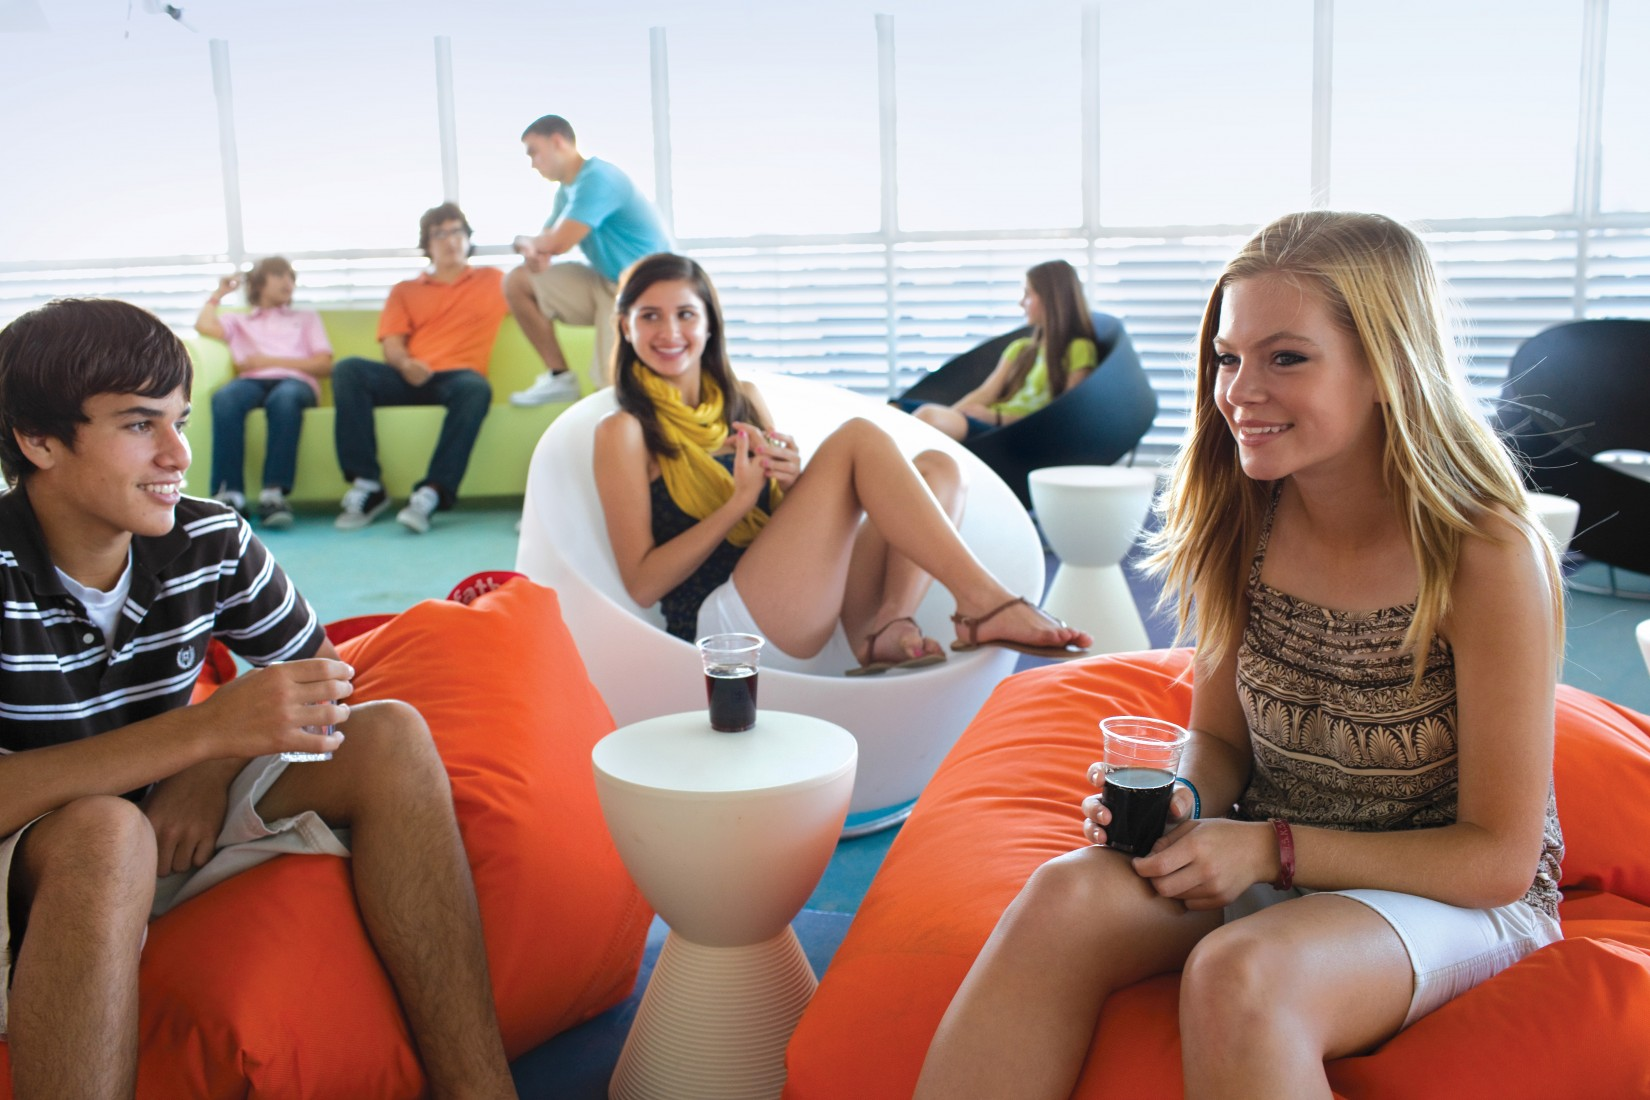 Chatting sites for teens